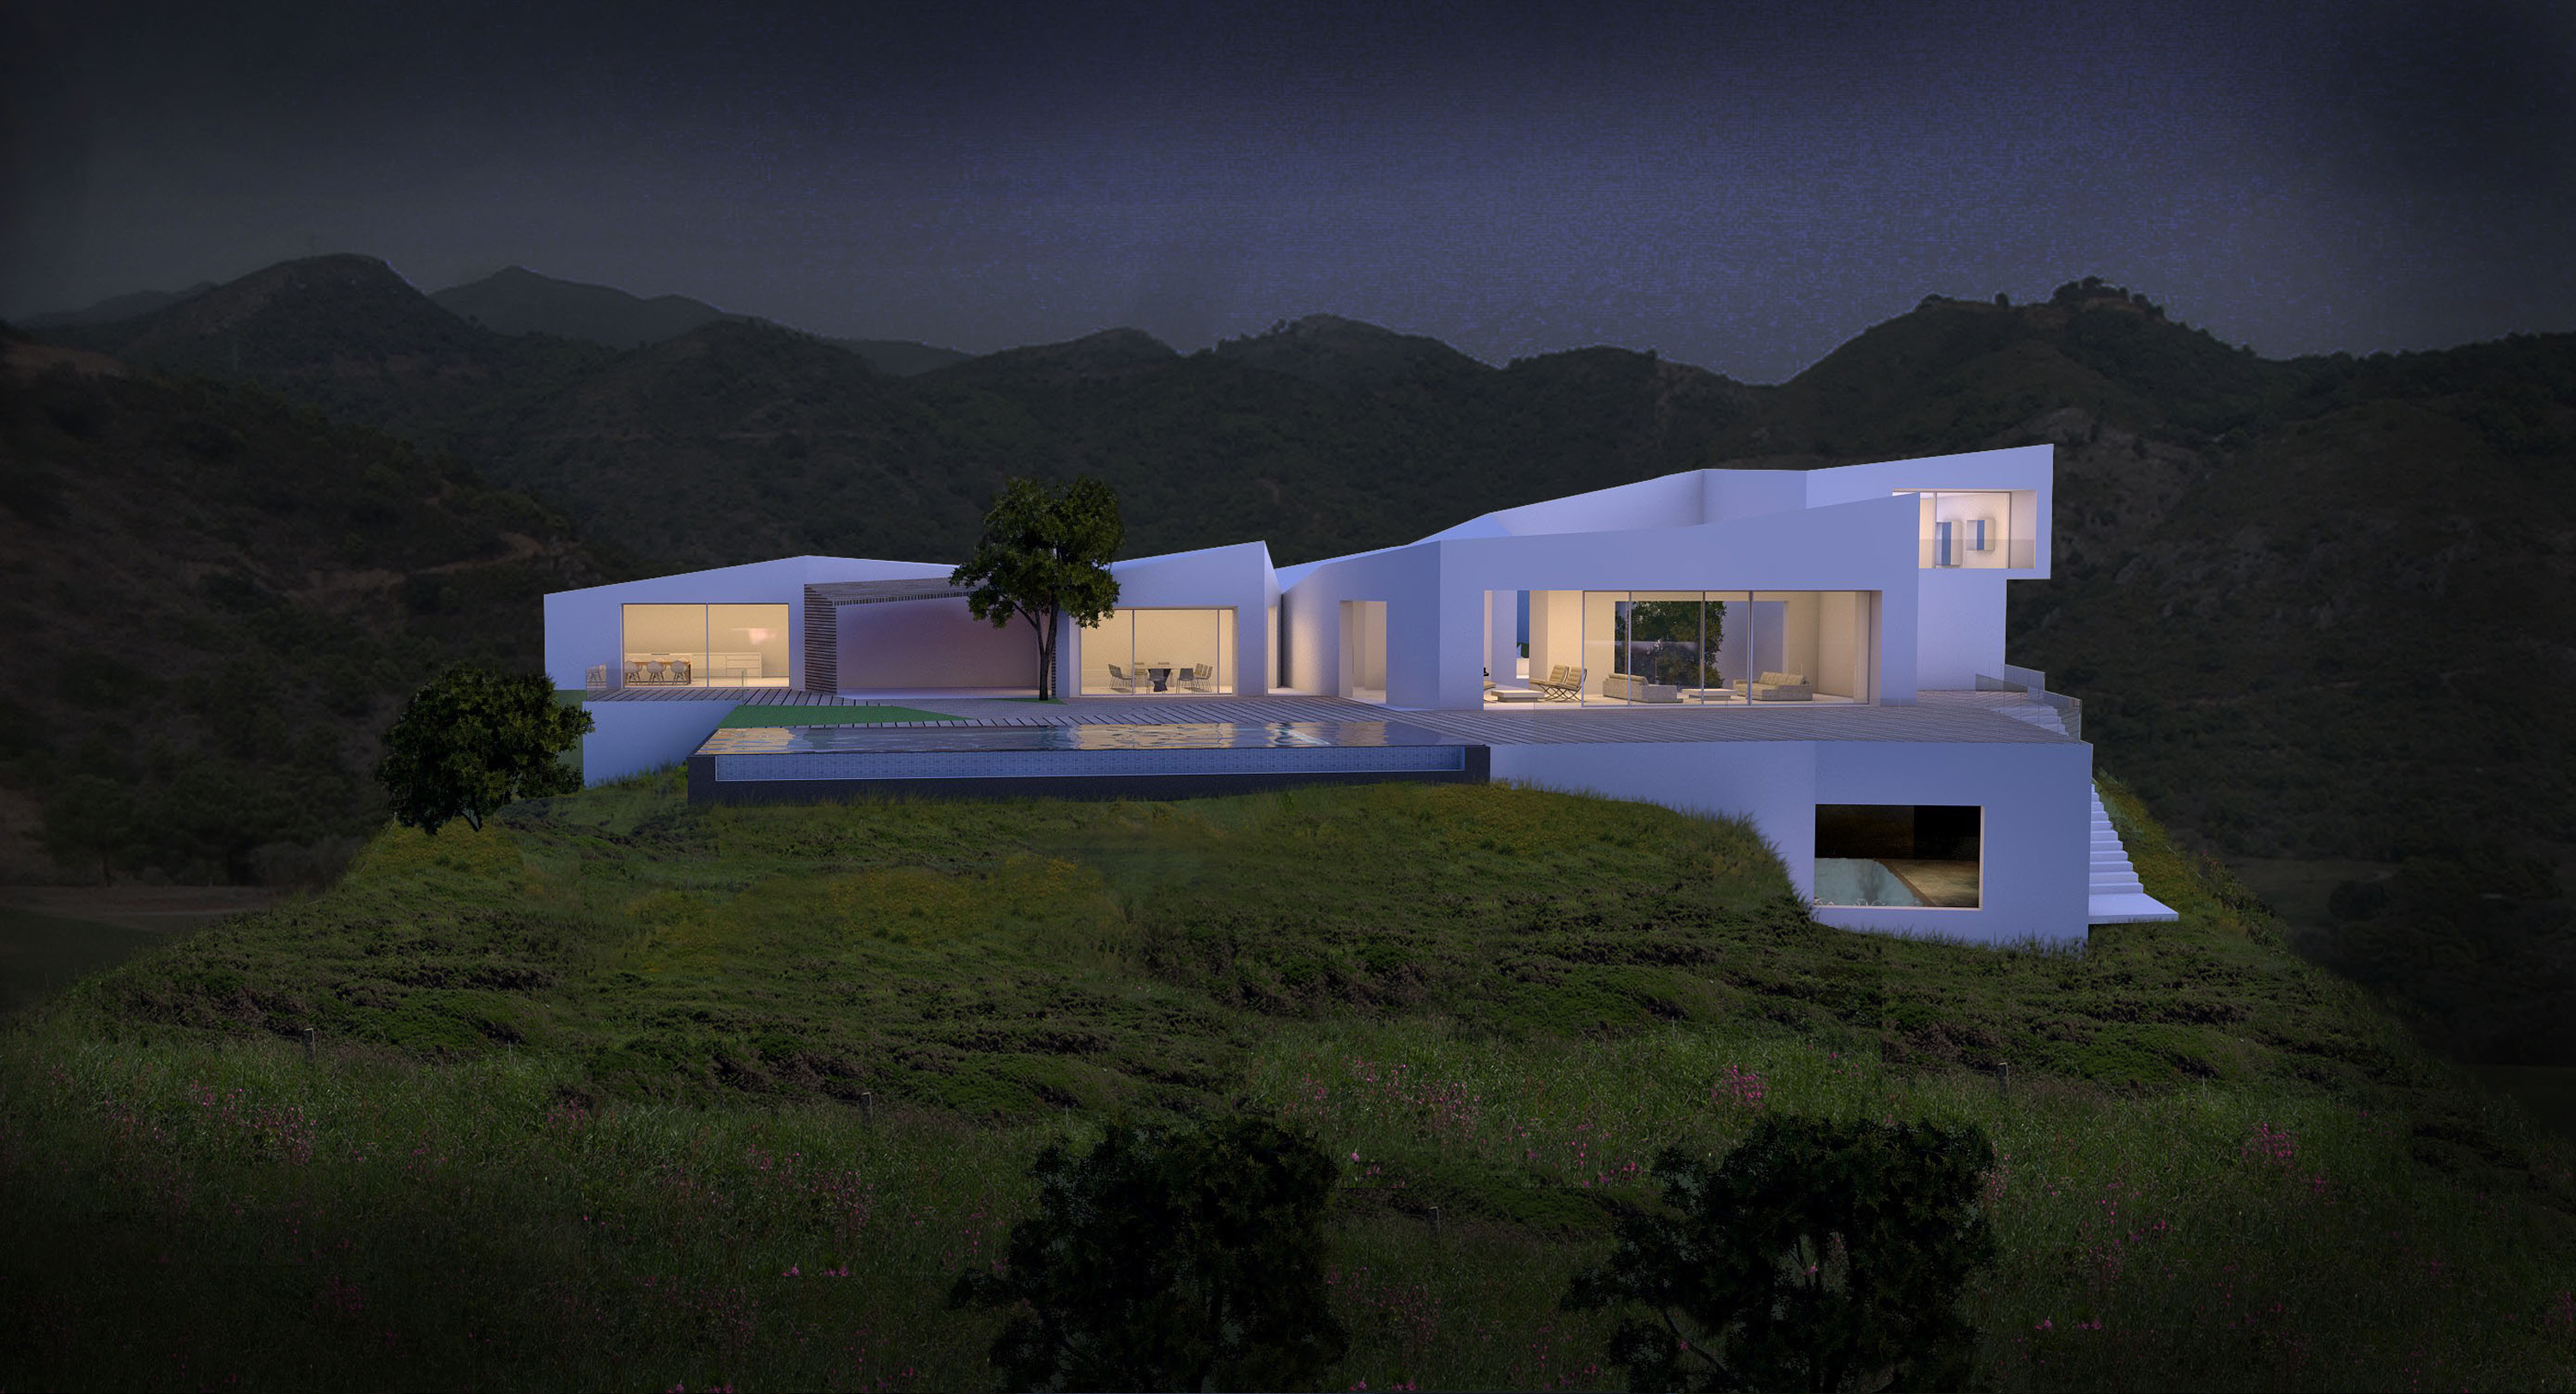 Mountain Top House Images